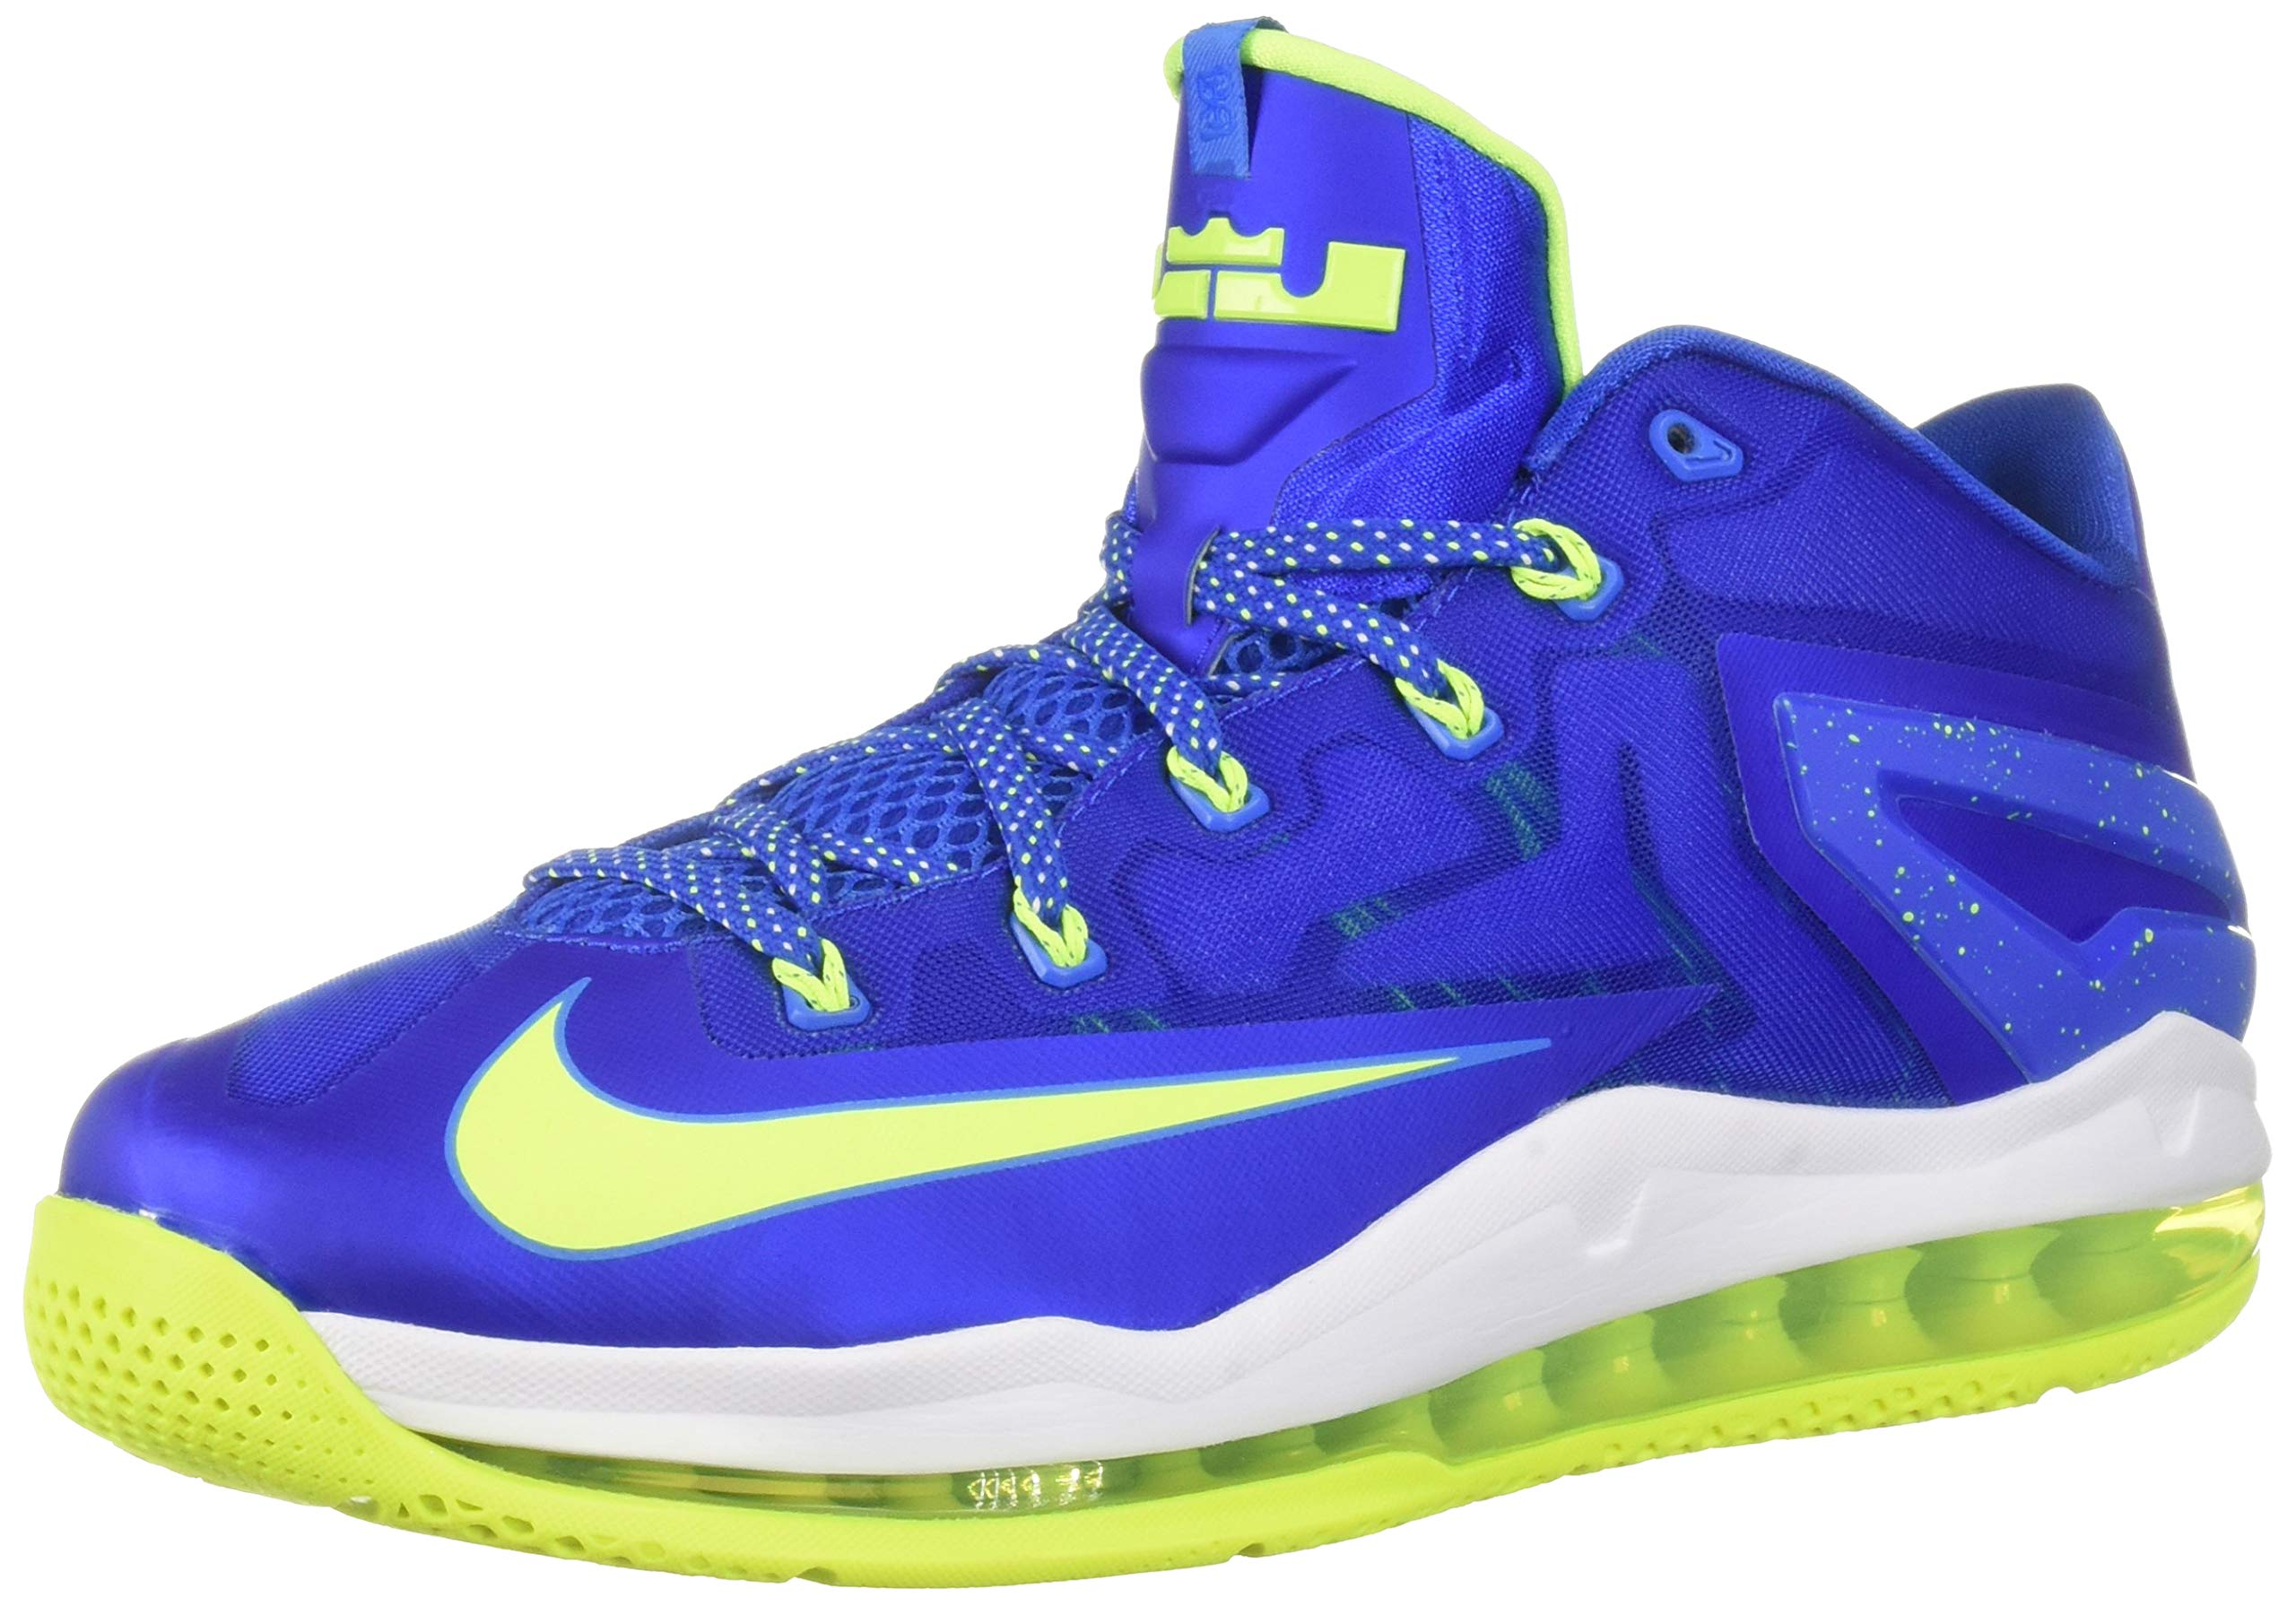 quality design 3e2d0 caa7a Galleon - NIKE Max Lebron XI Low Men Sneakers Hyper Cobalt White Photo  Blue Volt 642849-471 (SIZE  11.5)